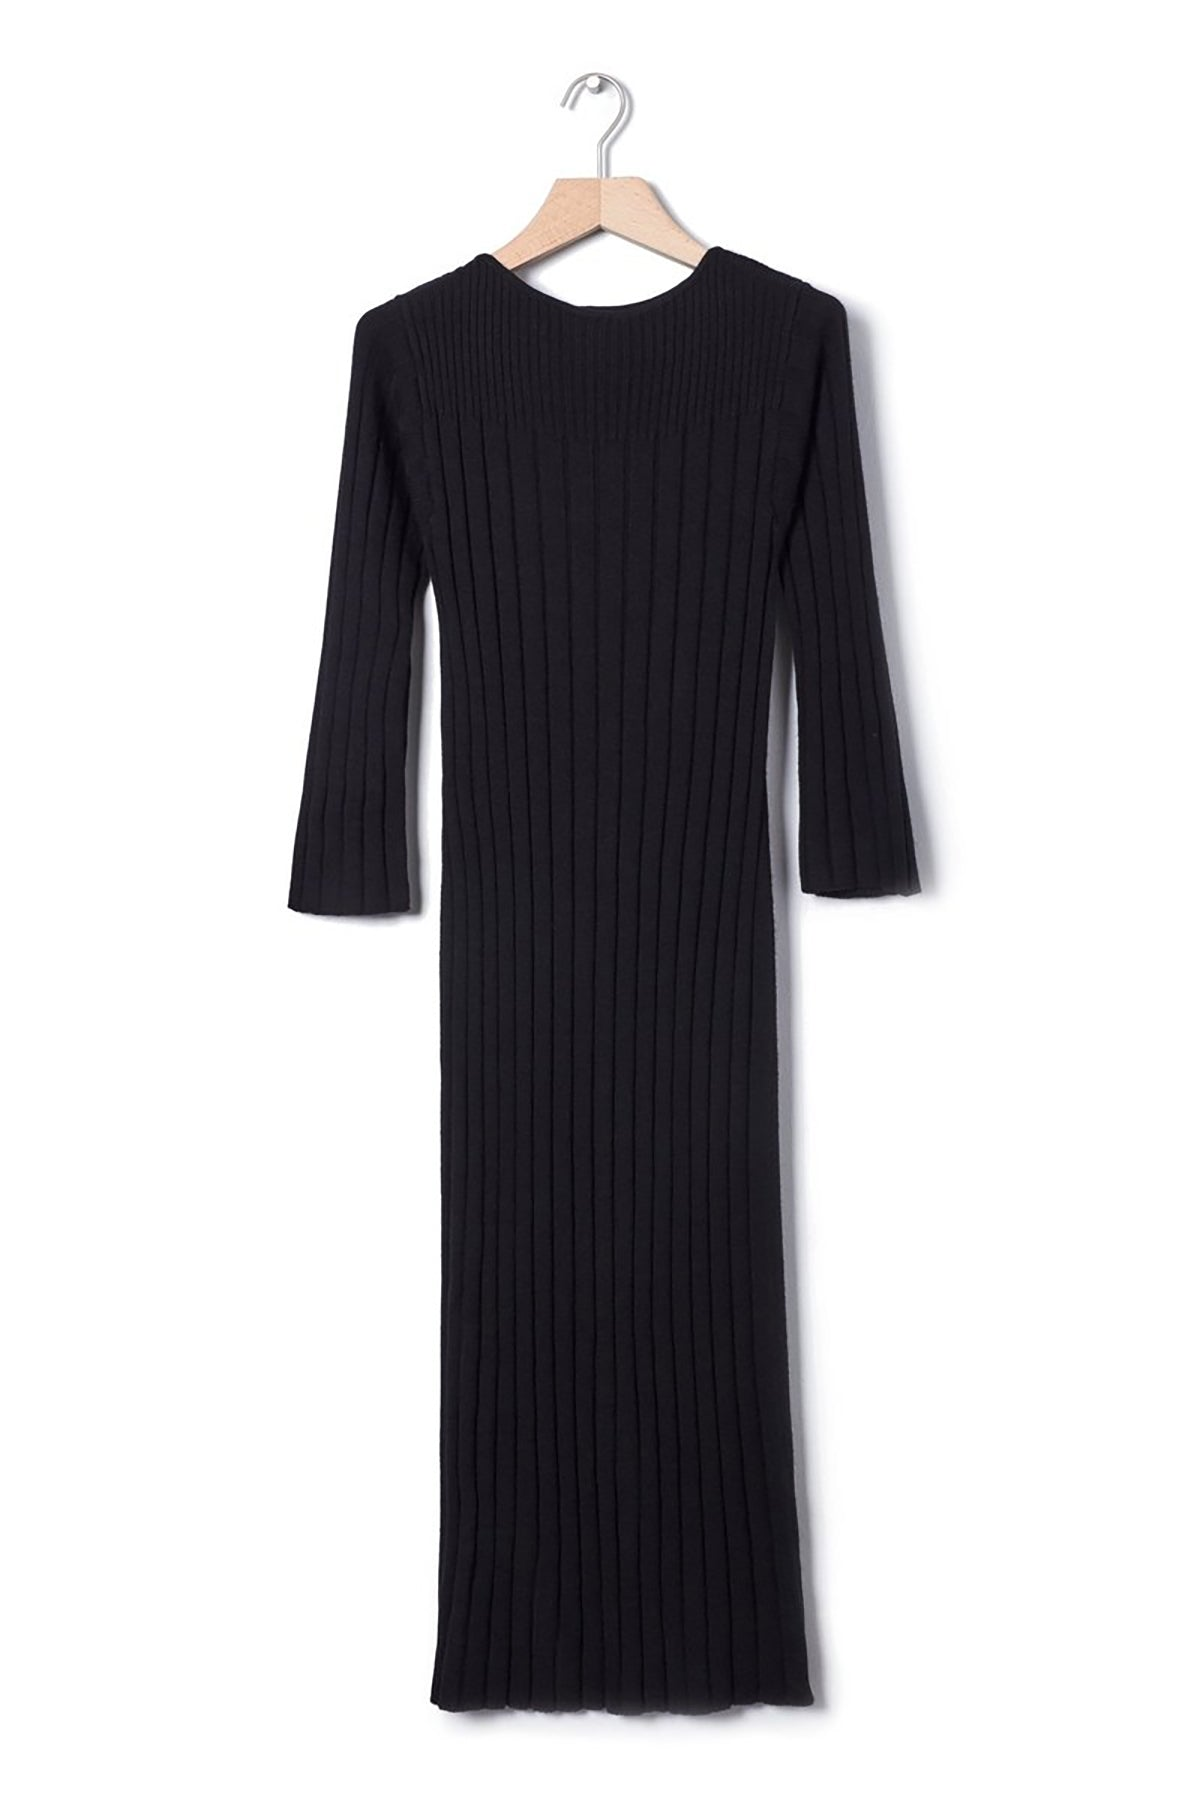 Kowtow Grace Dress Merino // Black